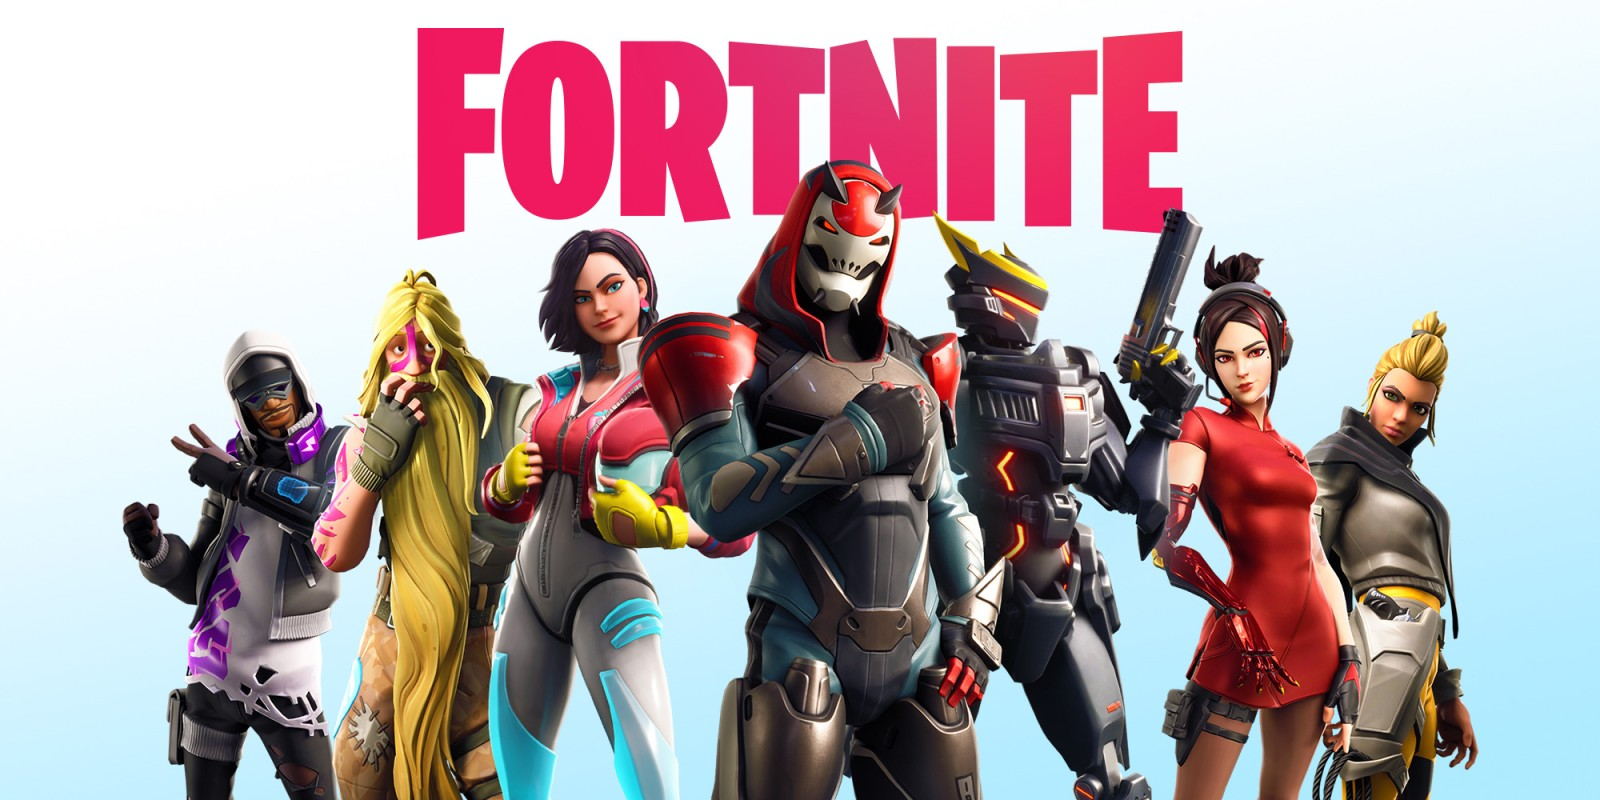 Fortnite again faces a lawsuit